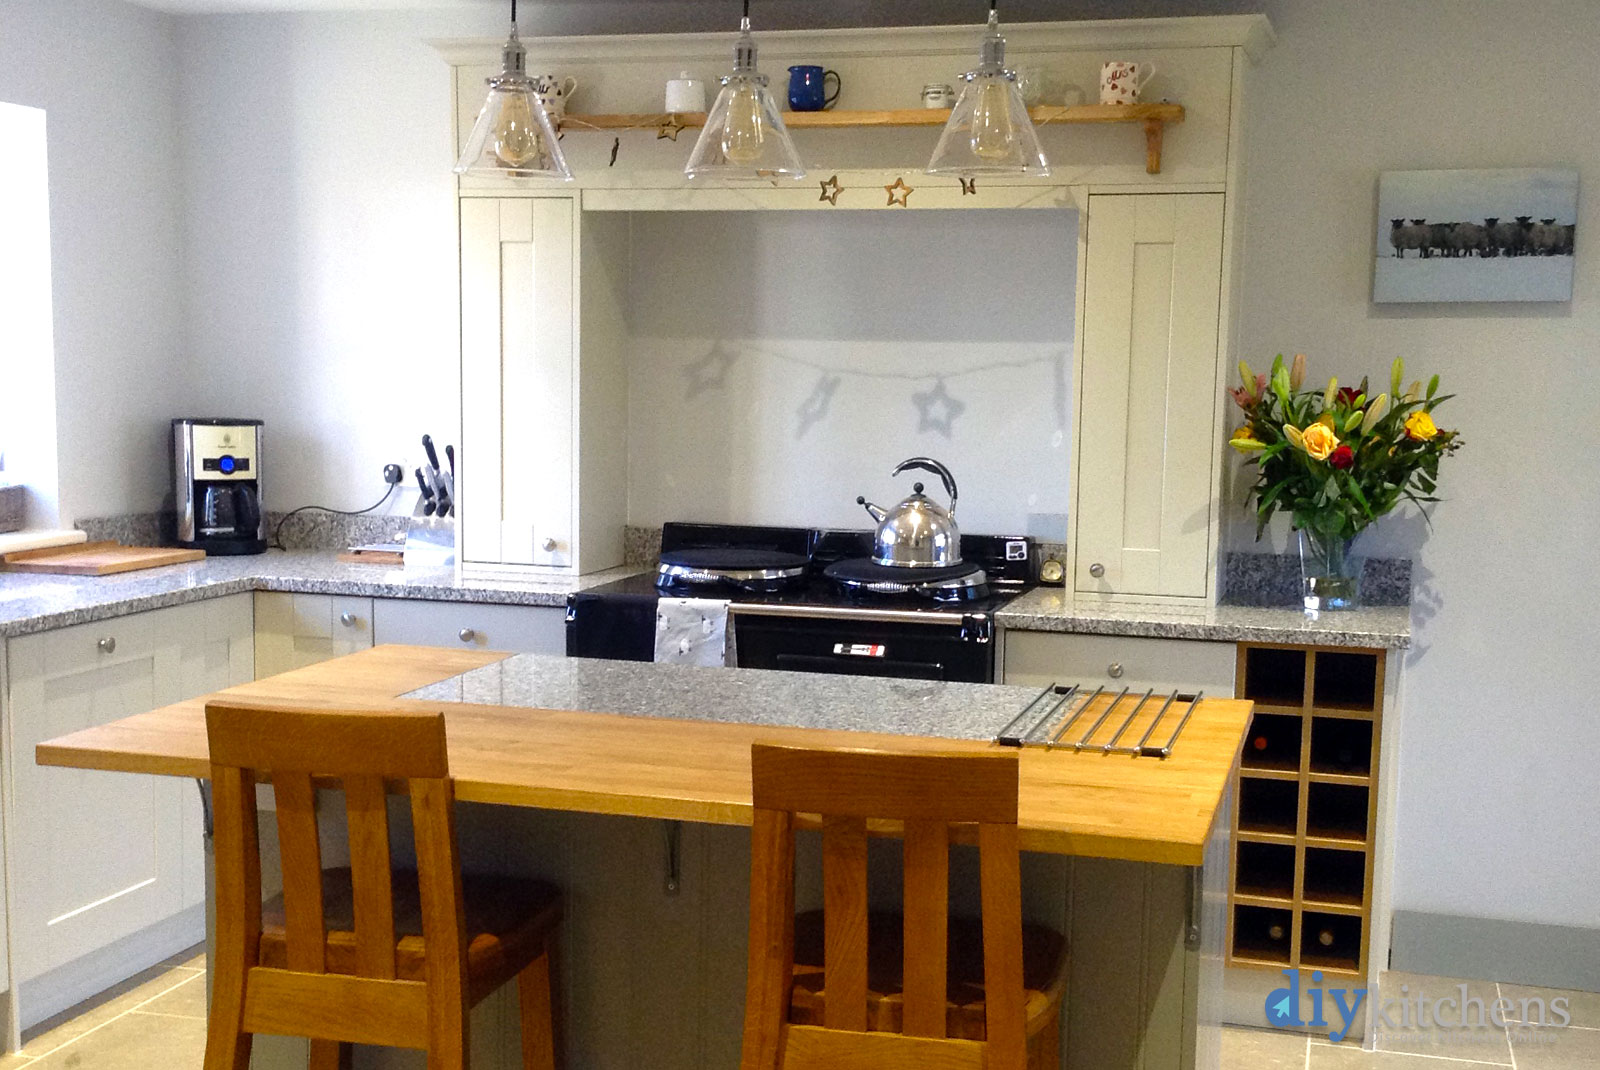 Stephanie from Longhoughton A few photos of our completed